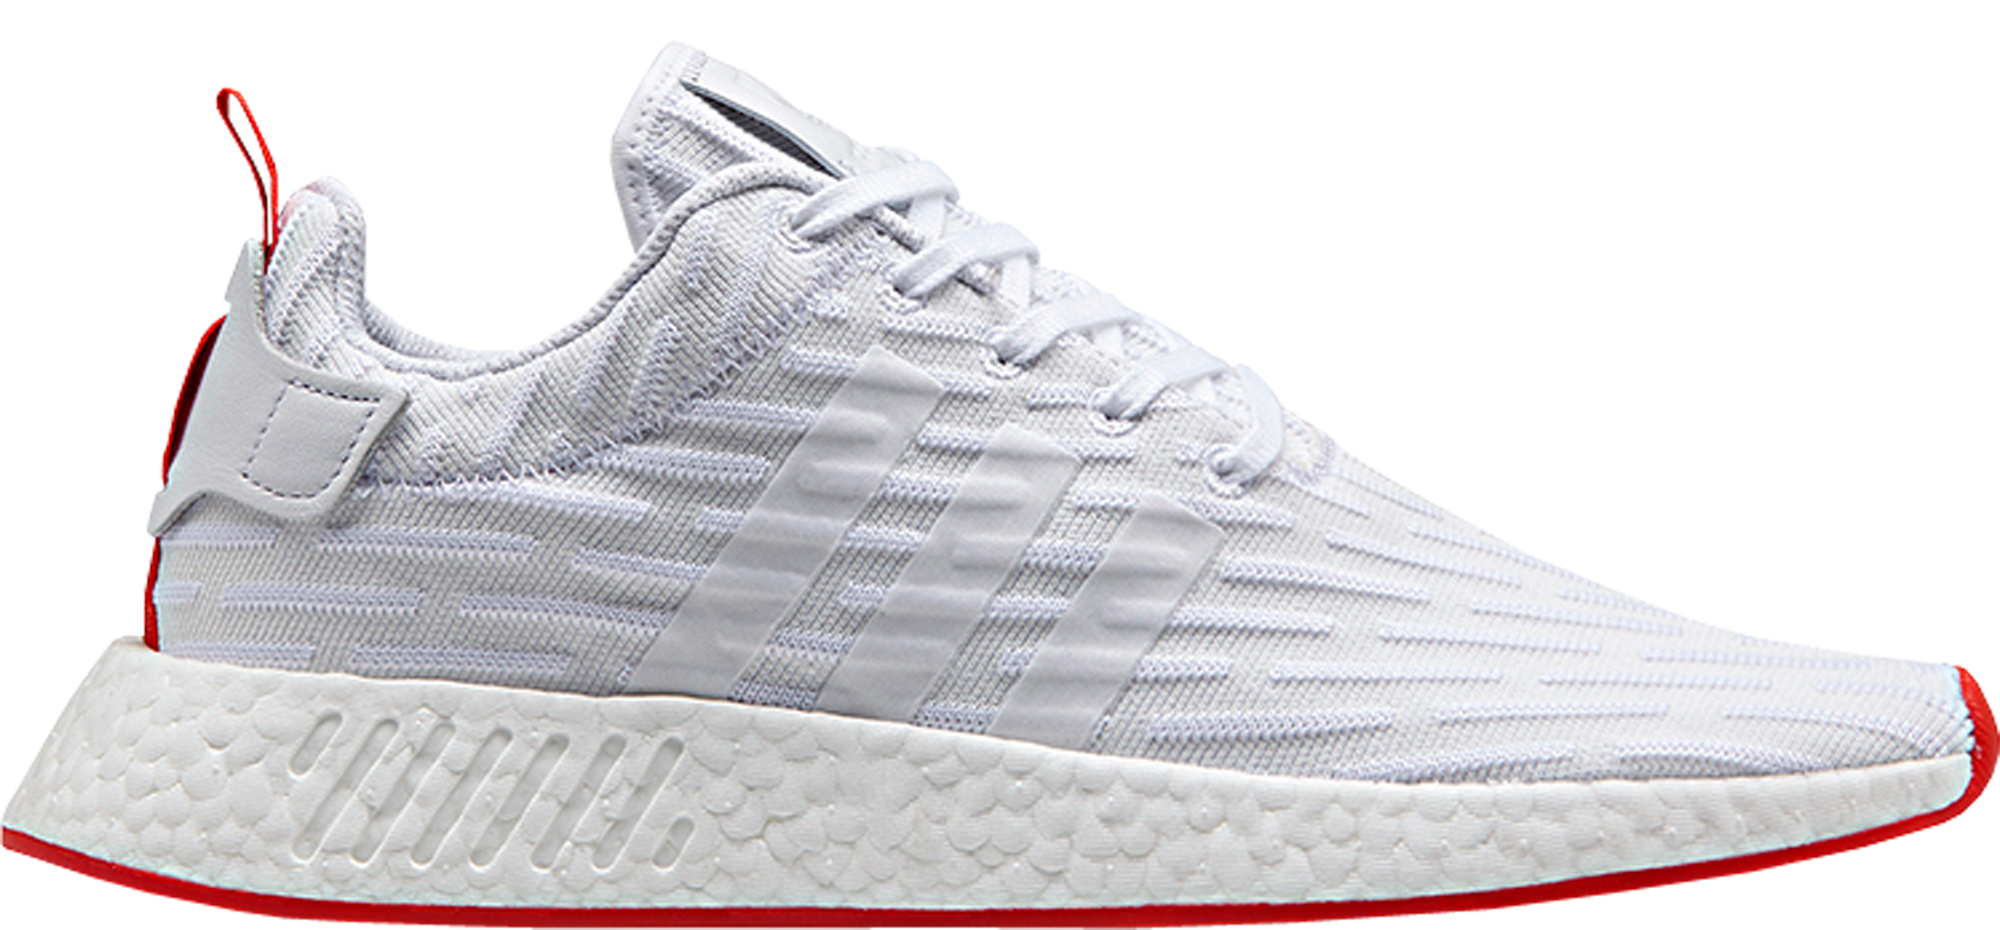 Regulación Absorbente Cincuenta  adidas NMD R2 Two-Toned White Red - StockX News